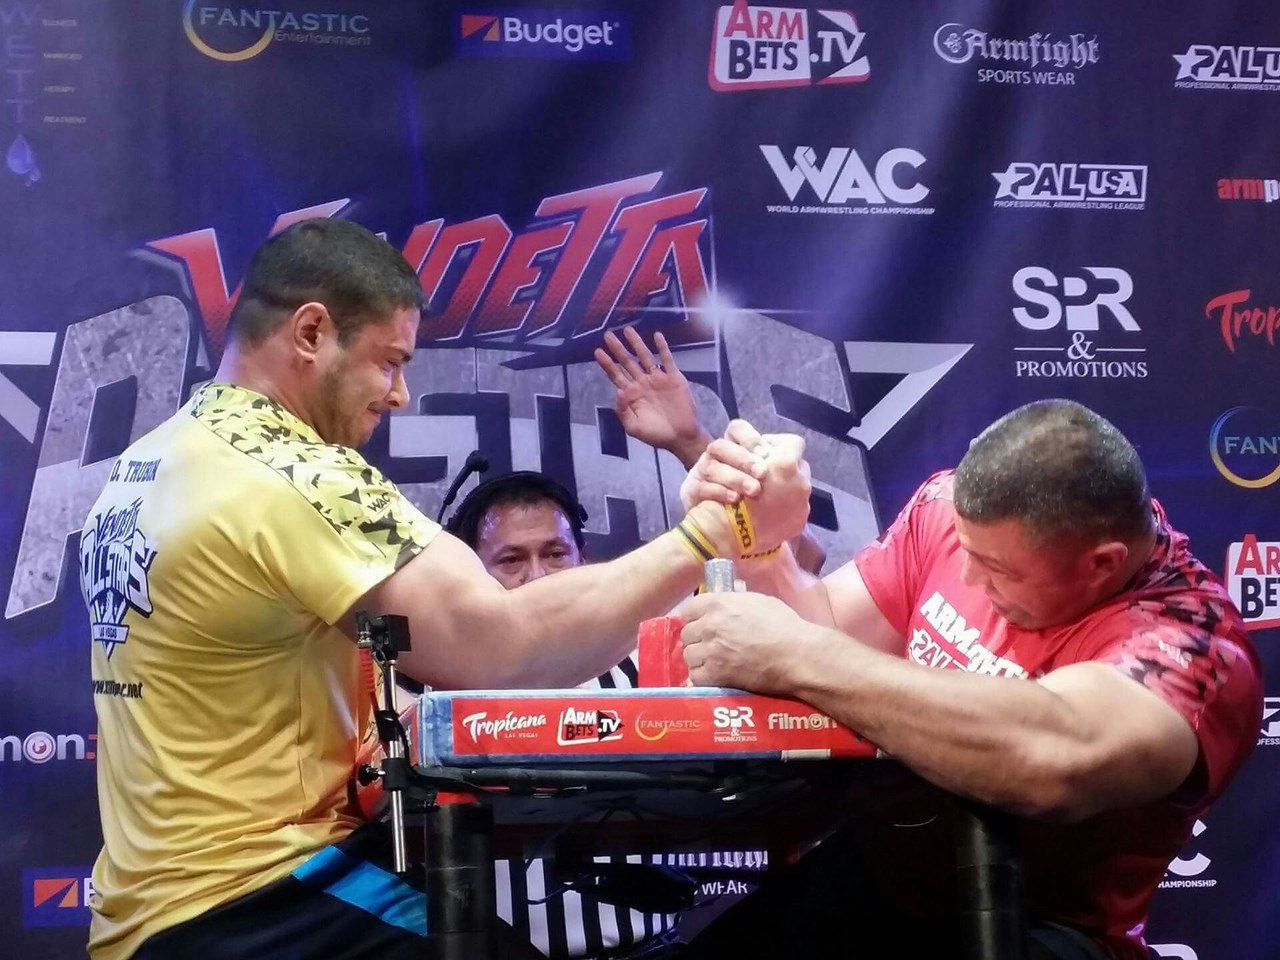 Dmitry Trubin vs. Andrey Pushkar, ARMFIGHT 46 VENDETTA ALL STARS, LAS VEGAS │ Photo posted by Irina Way in Армрестлинг главная / Armwrestling / Армспорт